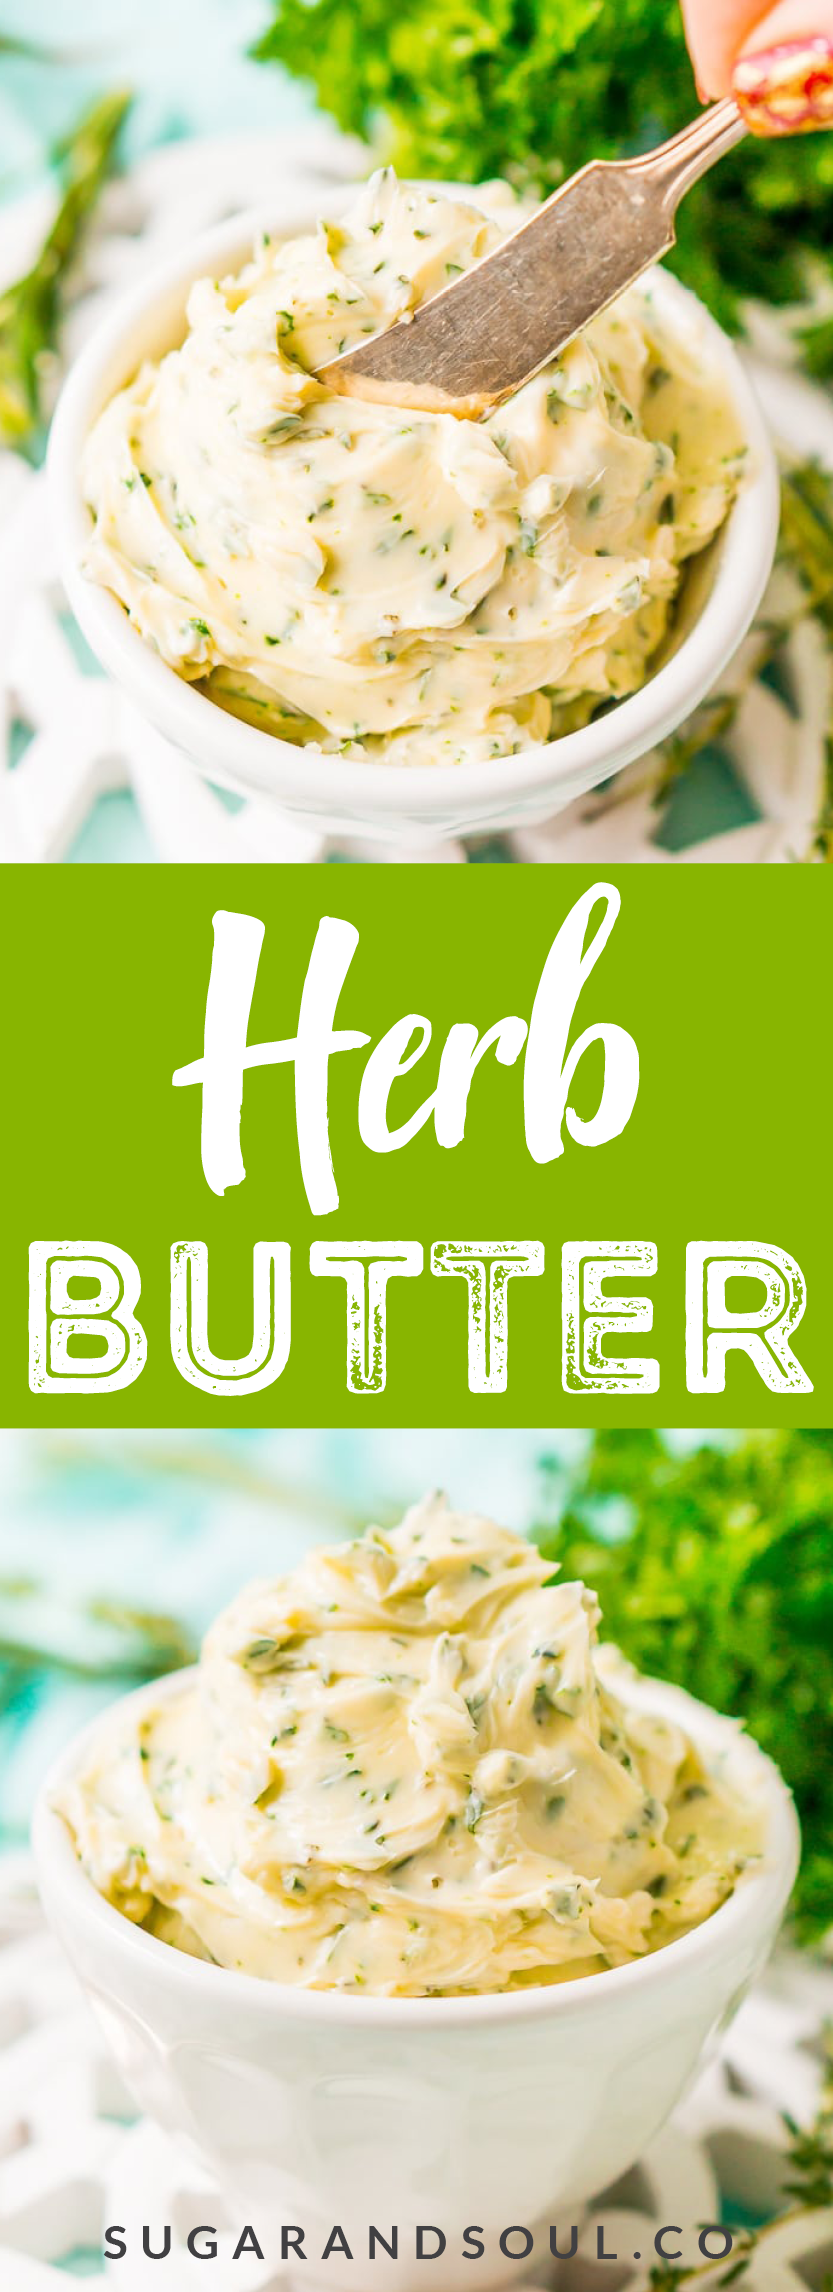 This savory Herb Butter is infused with parsley, thyme, rosemary, black pepper, and lemon zest for a flavorful spread that tastes delicious on garlic bread, dinner rolls, steak, and more! via @sugarandsoulco